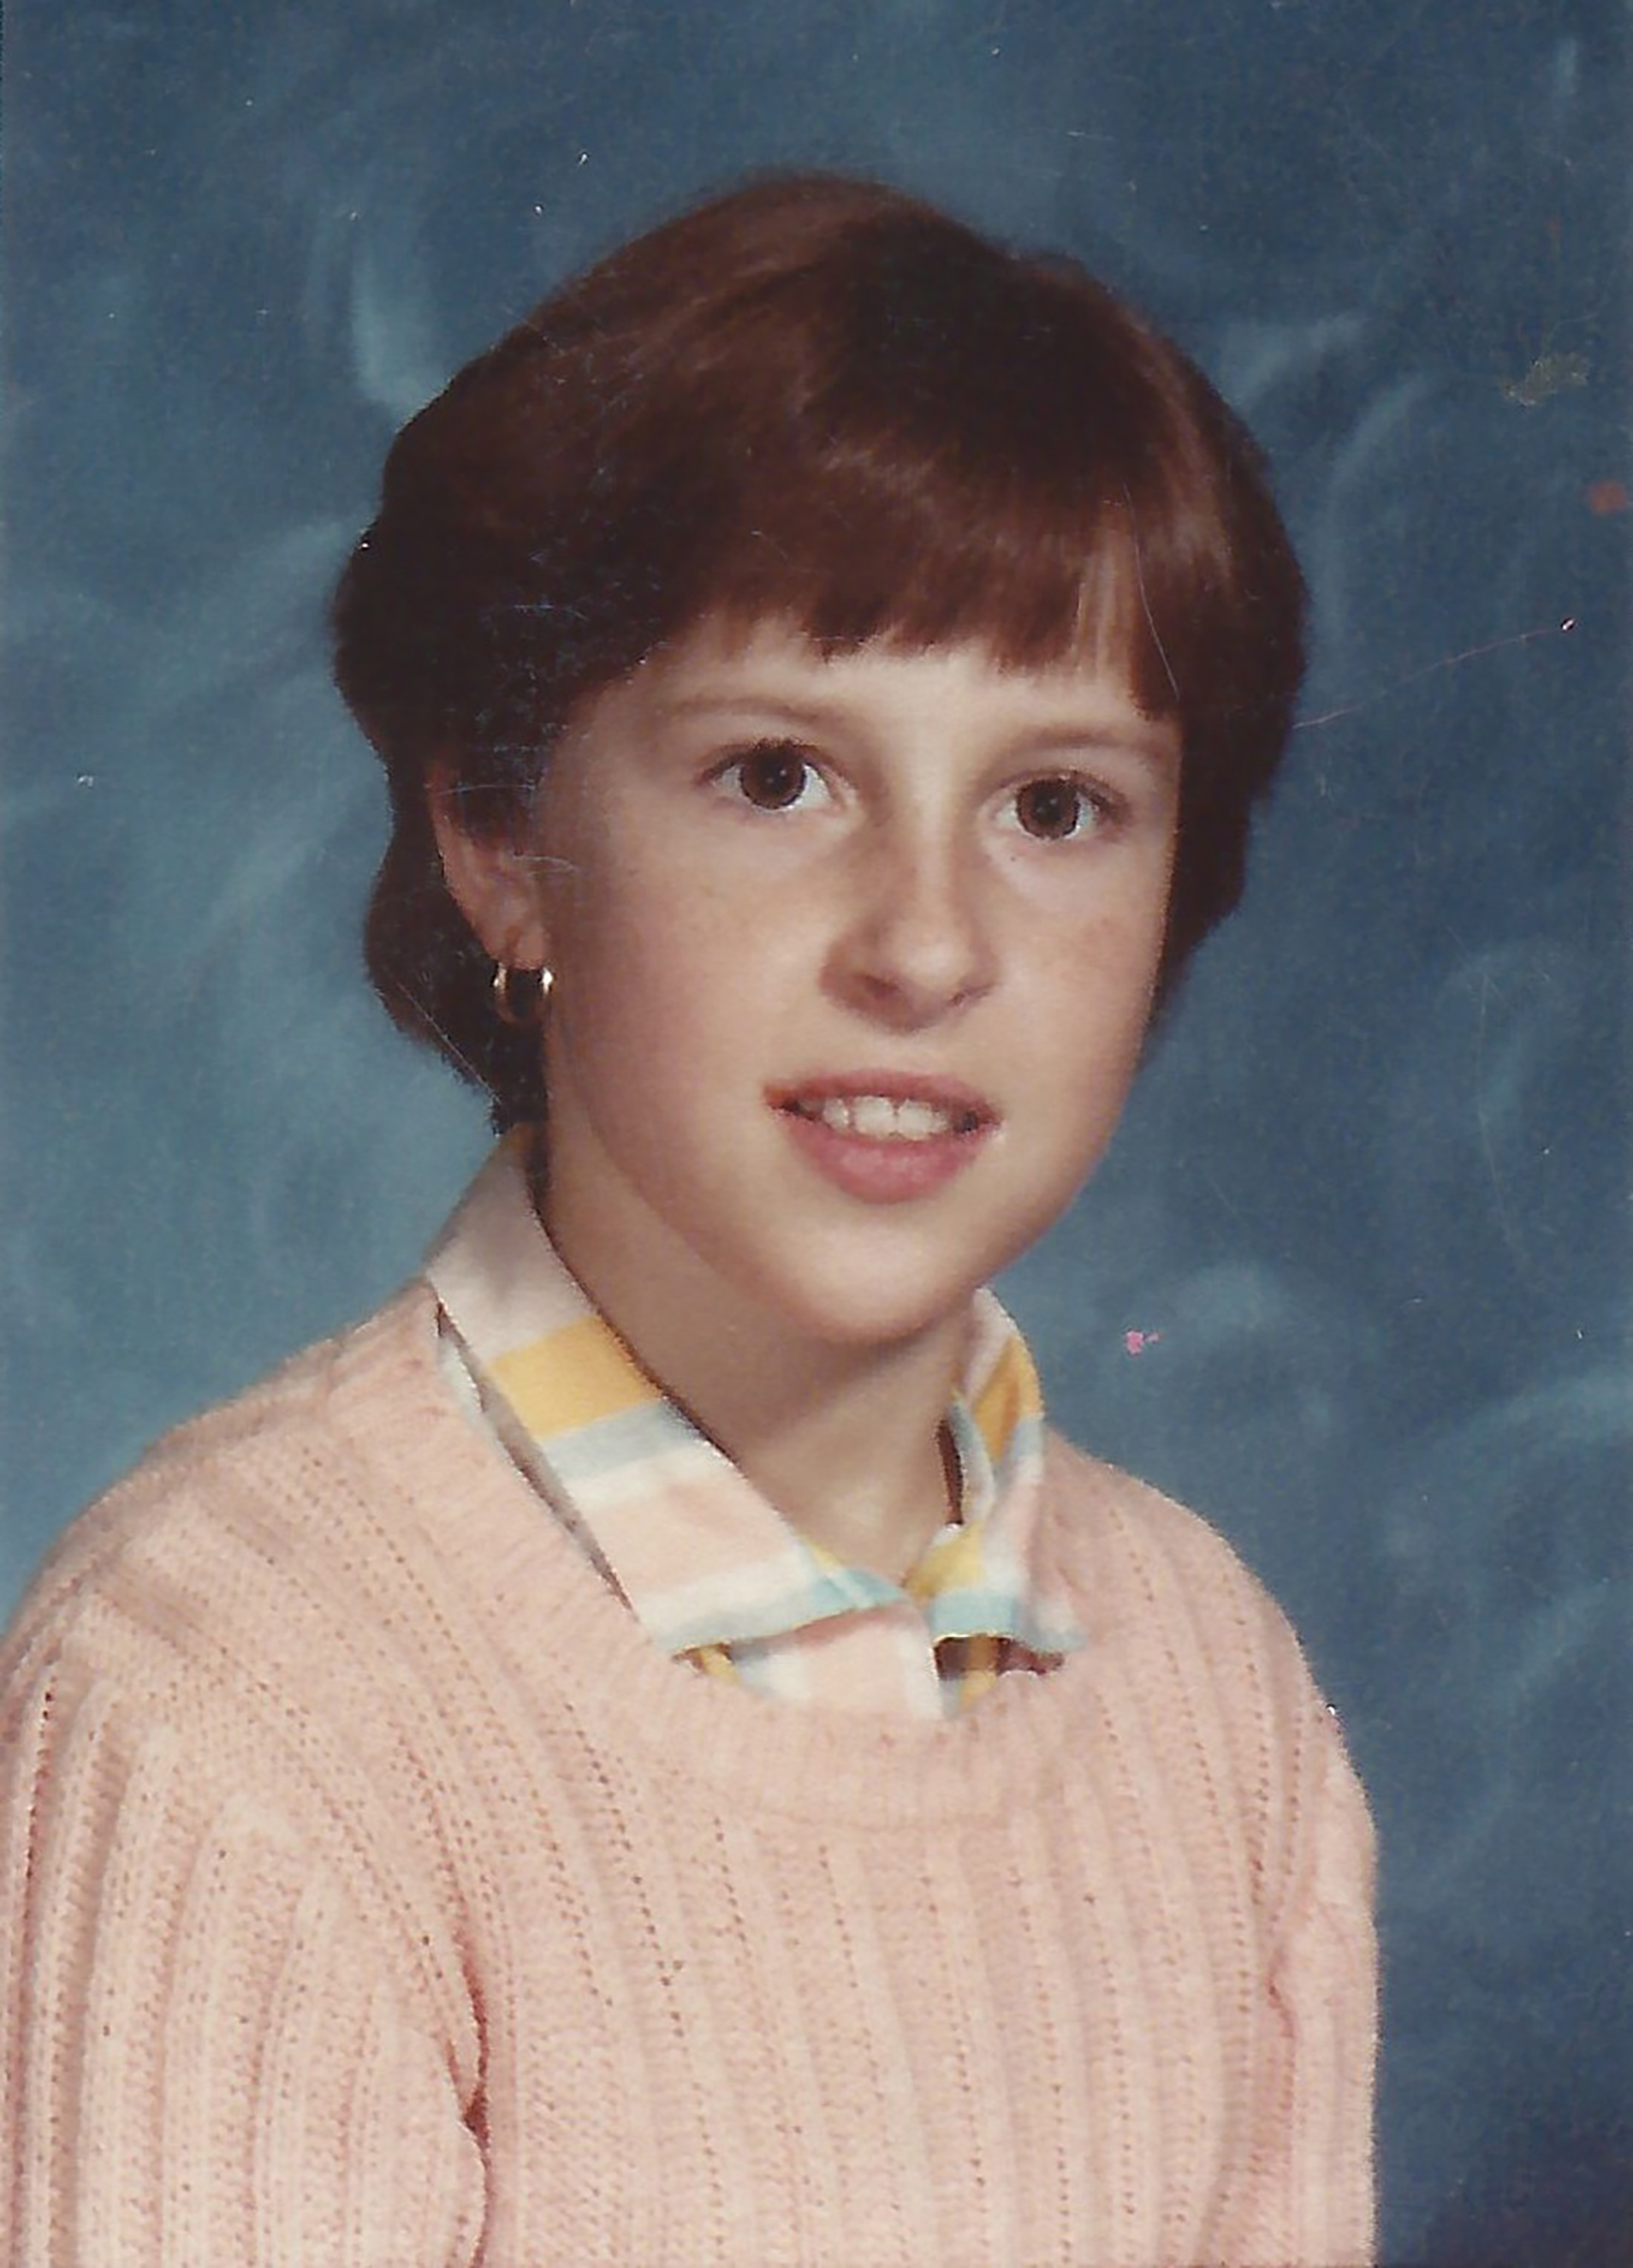 Teristi's school portrait circa 1984, the year she started at Great Lakes Gymnastics.